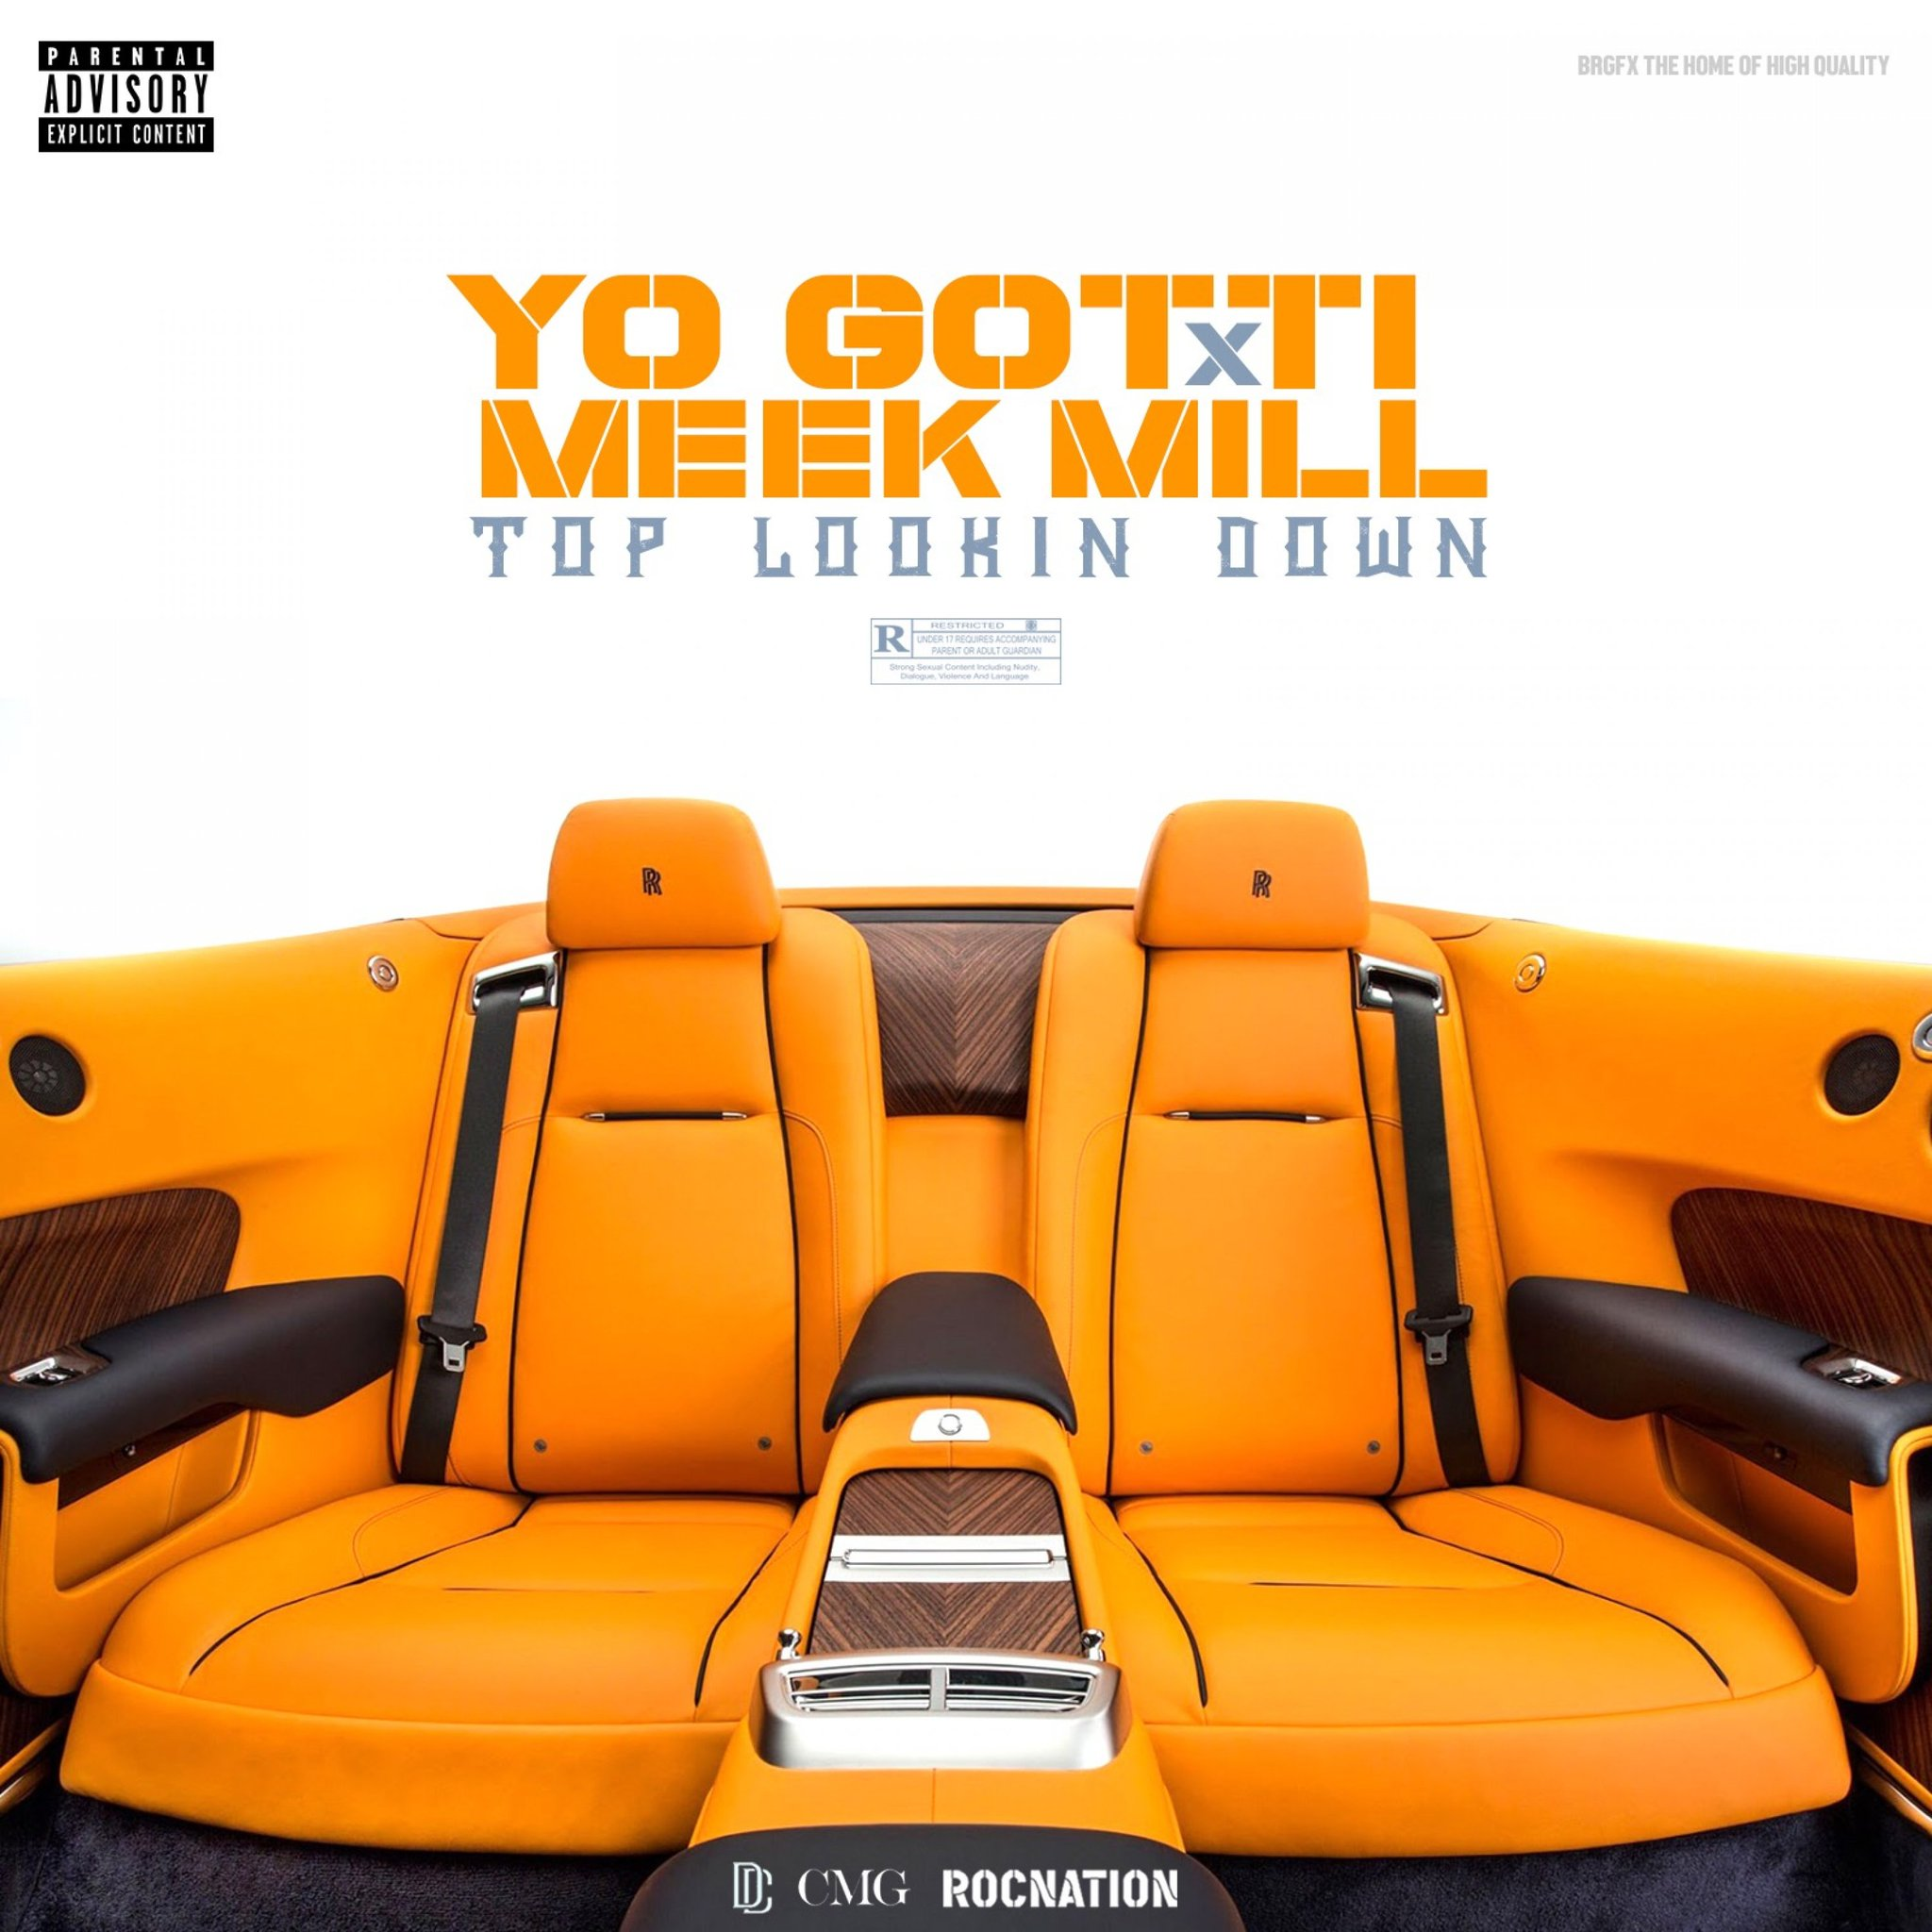 New Music: Yo Gotti Feat. Meek Mill 'Top Looking Down' https://t.co/EMQCRW6S4X https://t.co/tfDk6GHBgs